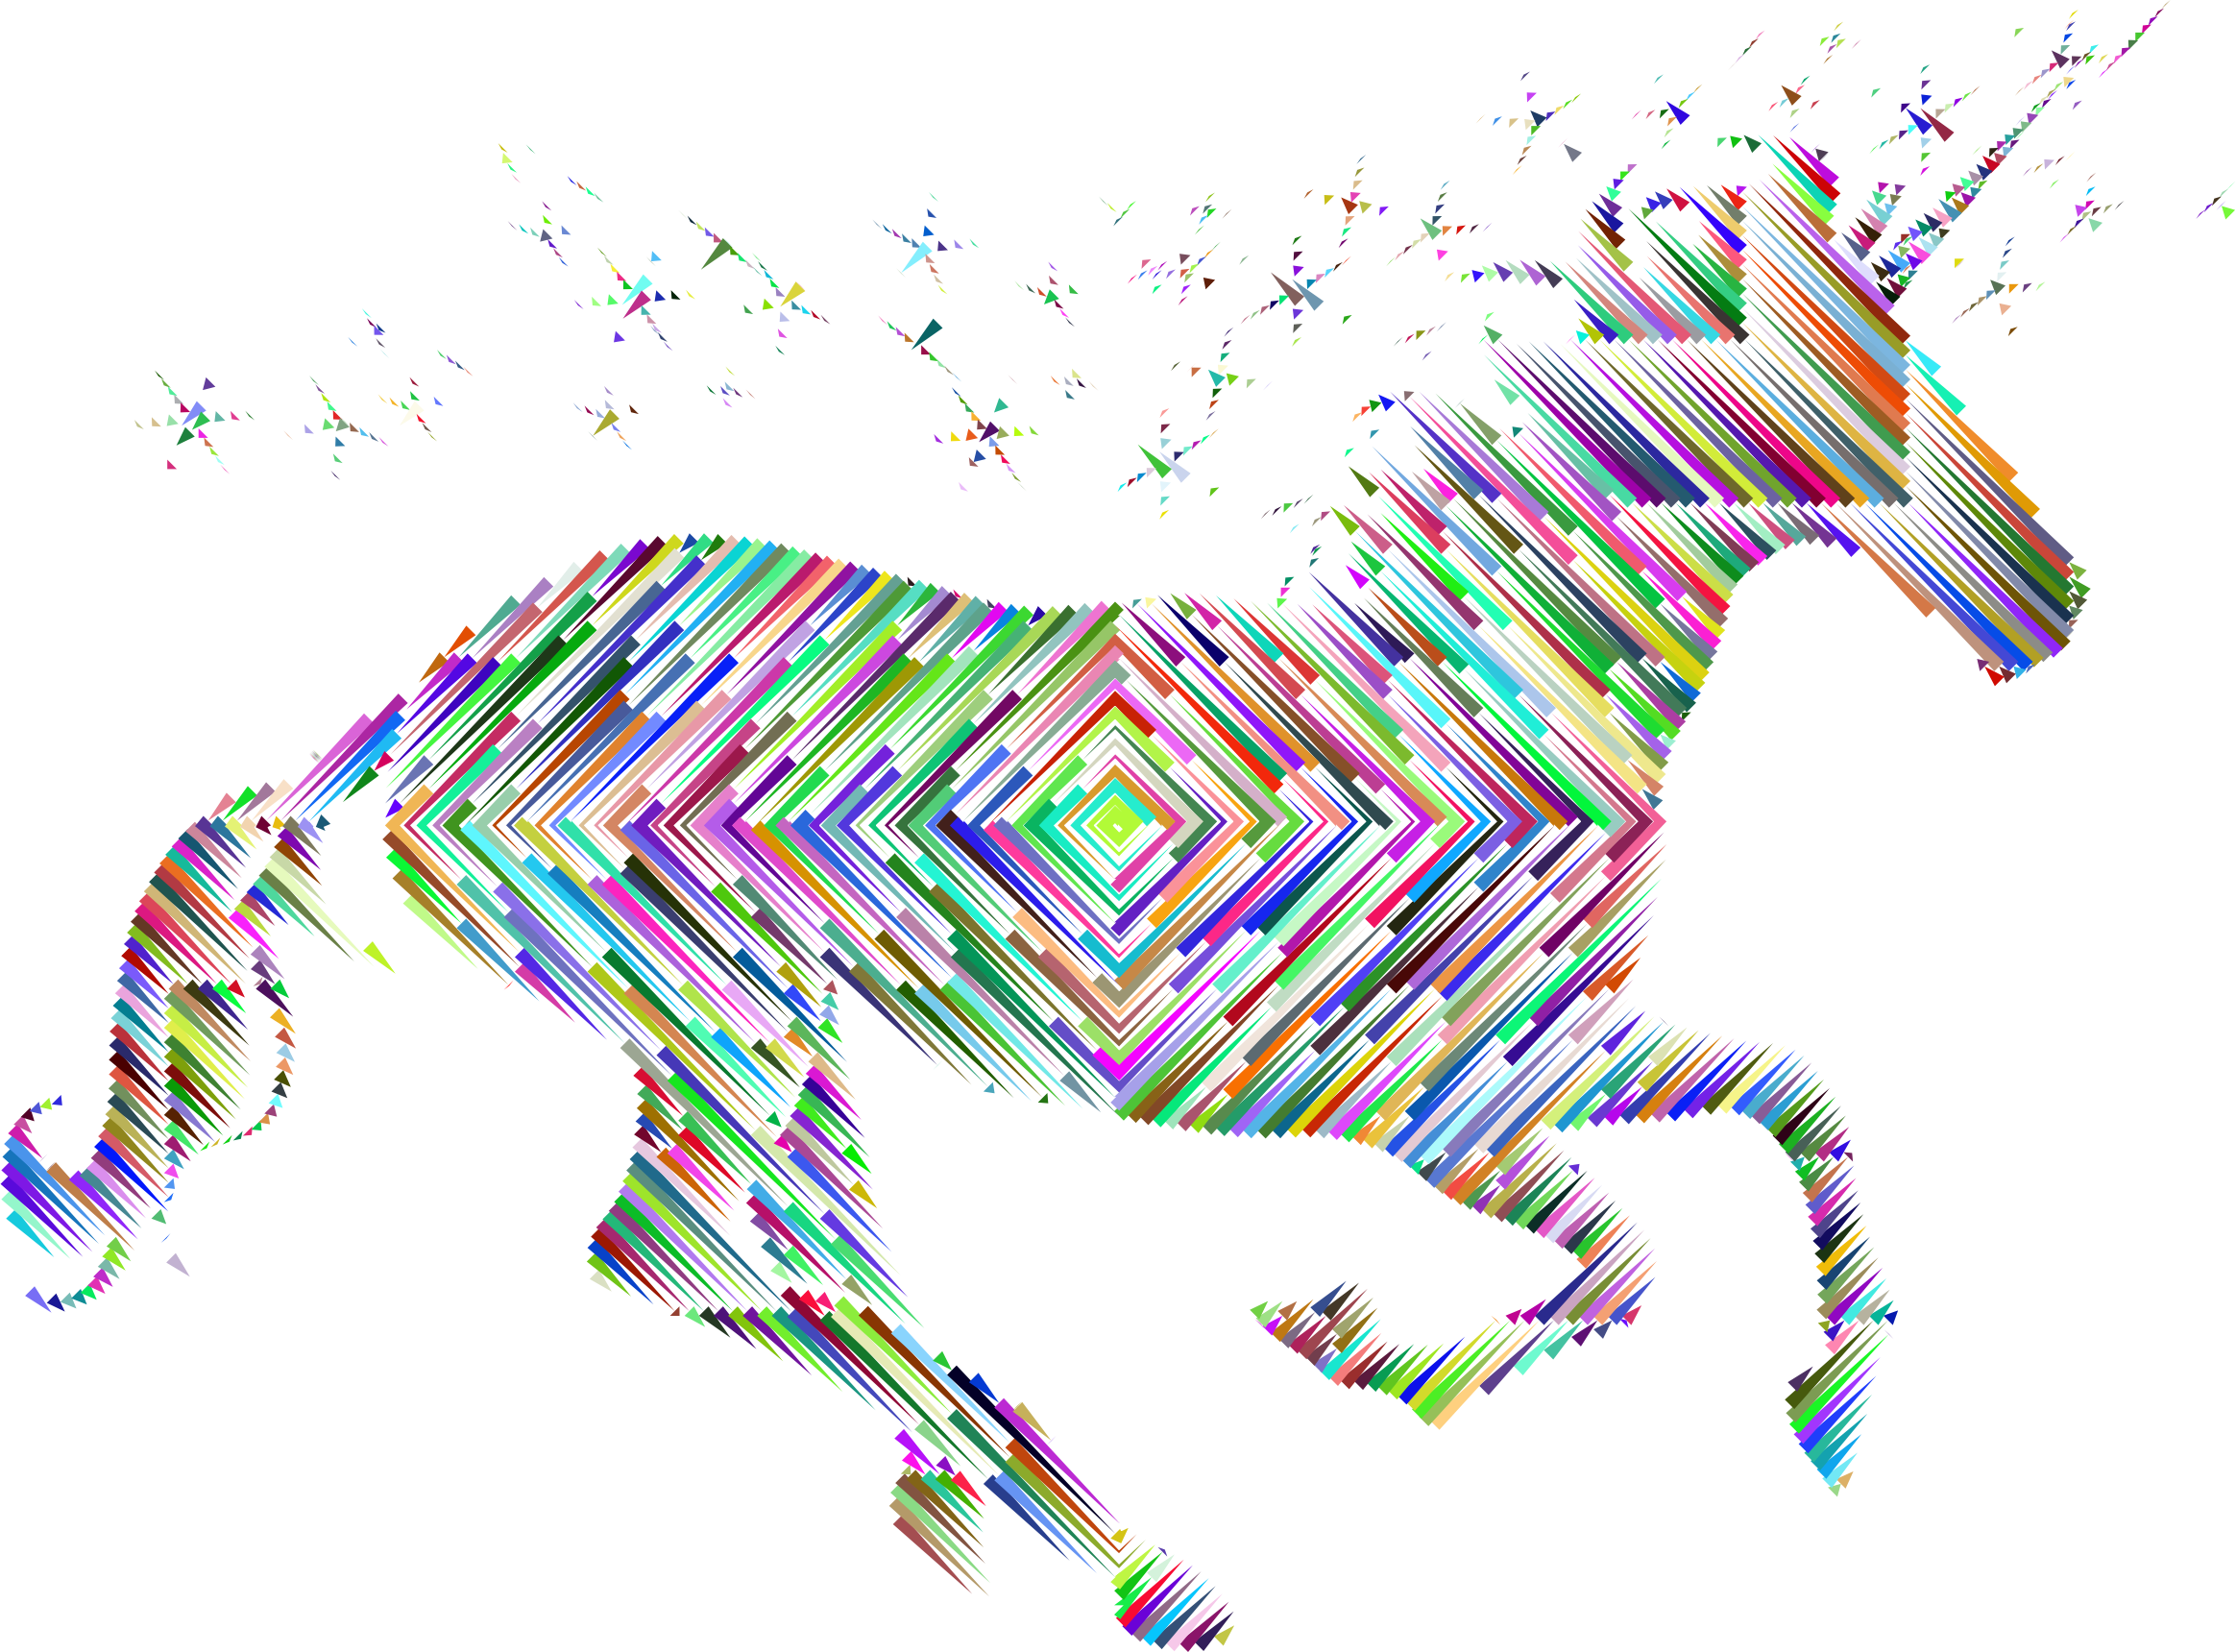 Prismatic Magical Unicorn Silhouette Concentric by GDJ